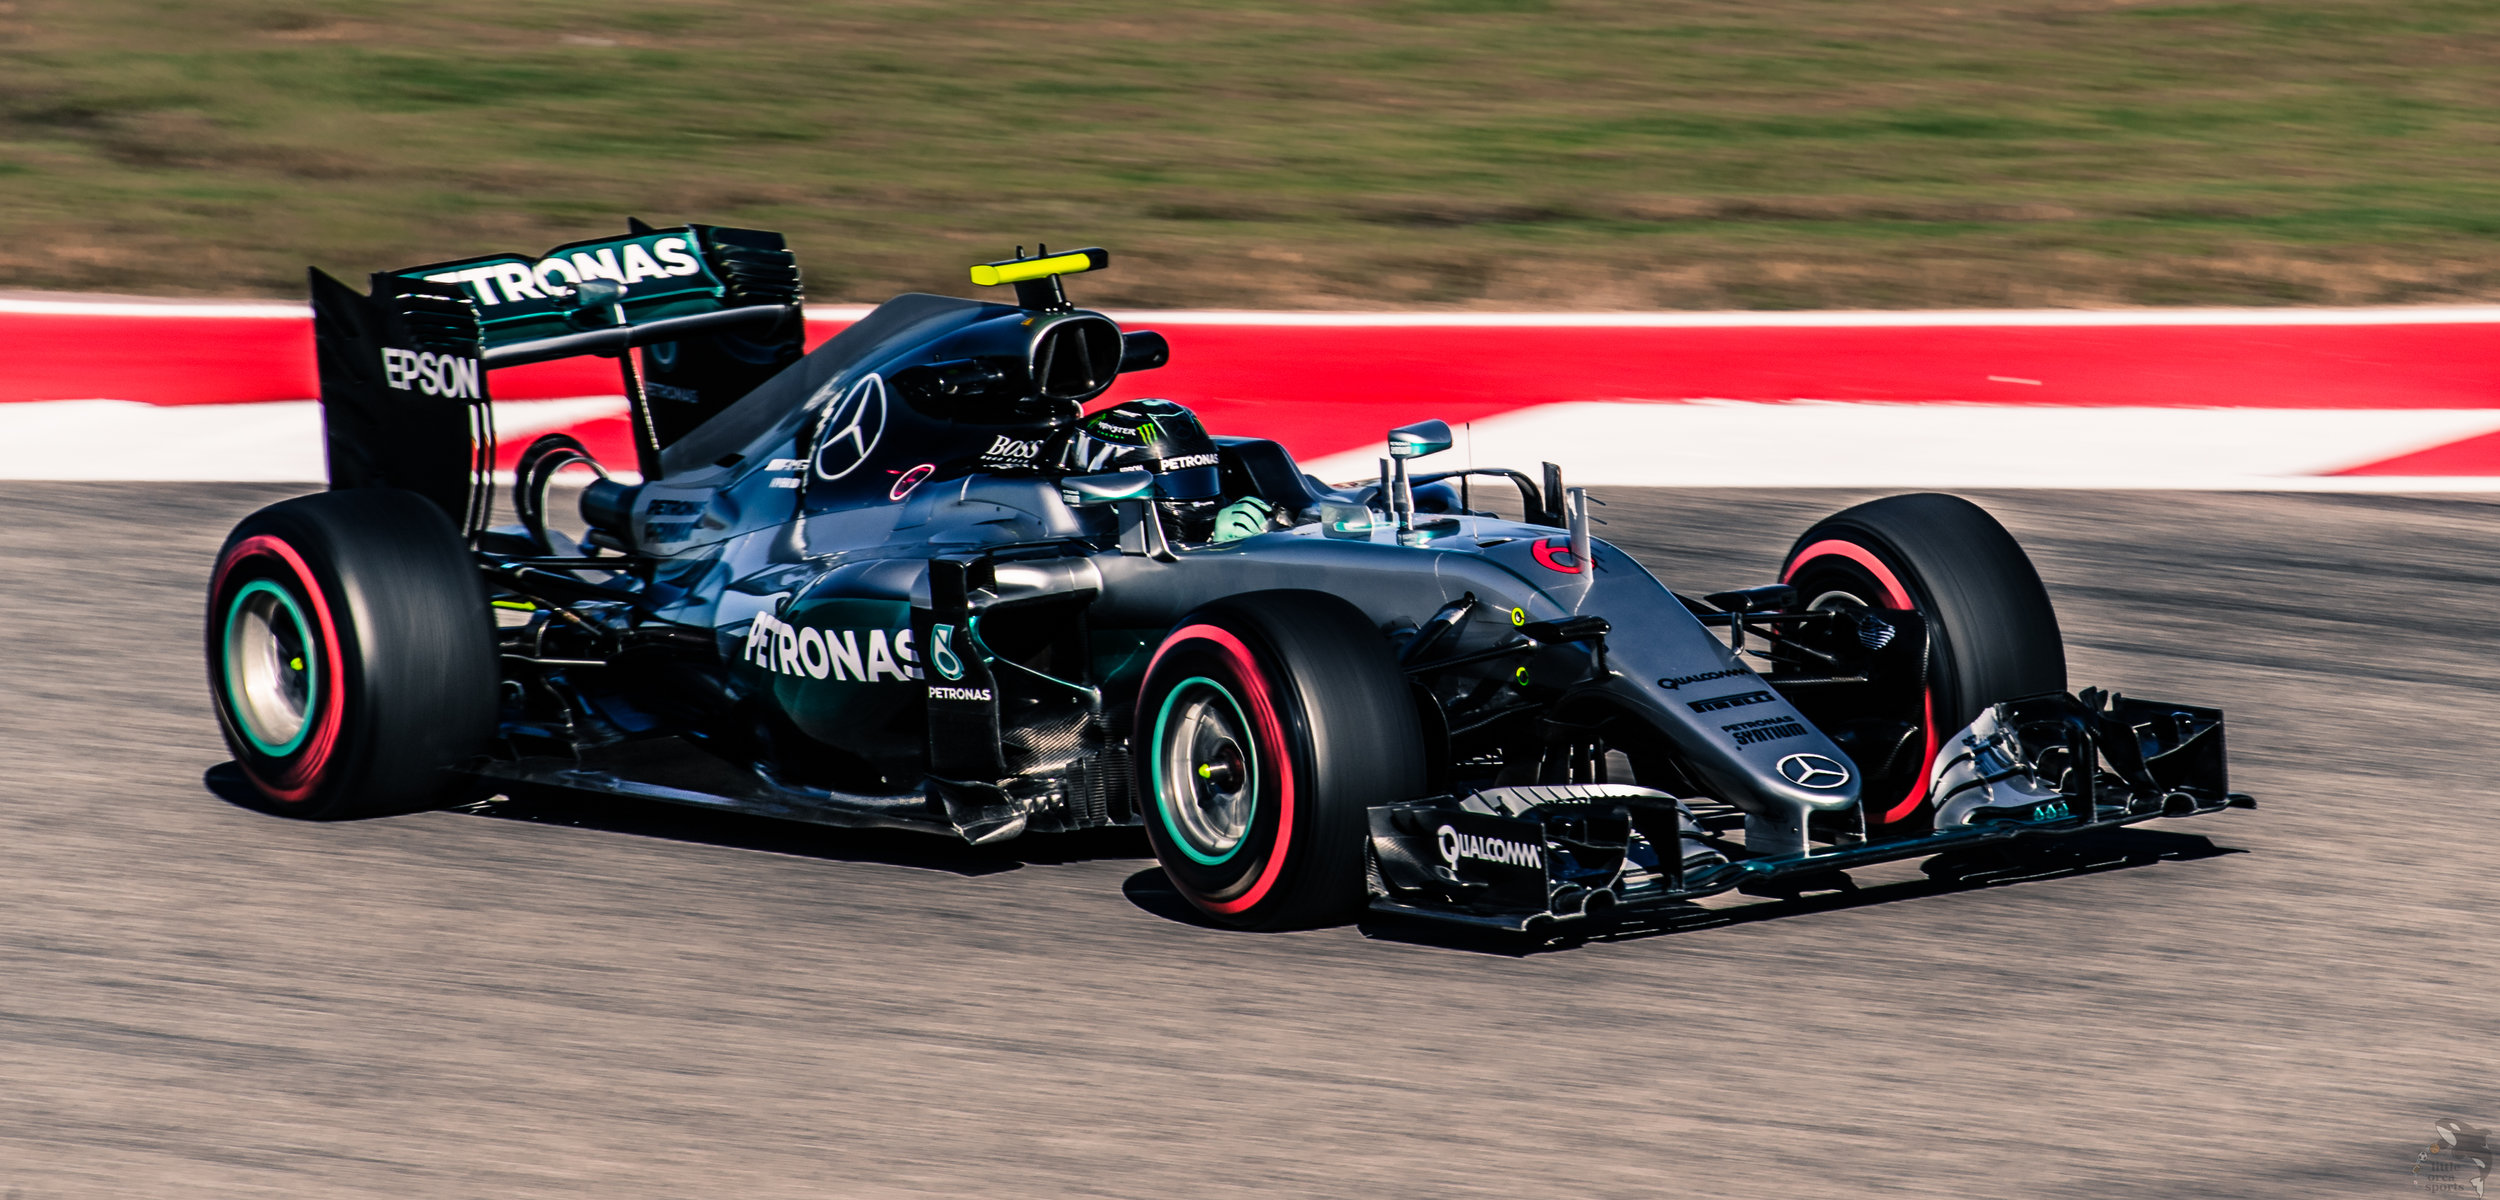 Nico Rosberg At Circuit of the Americas